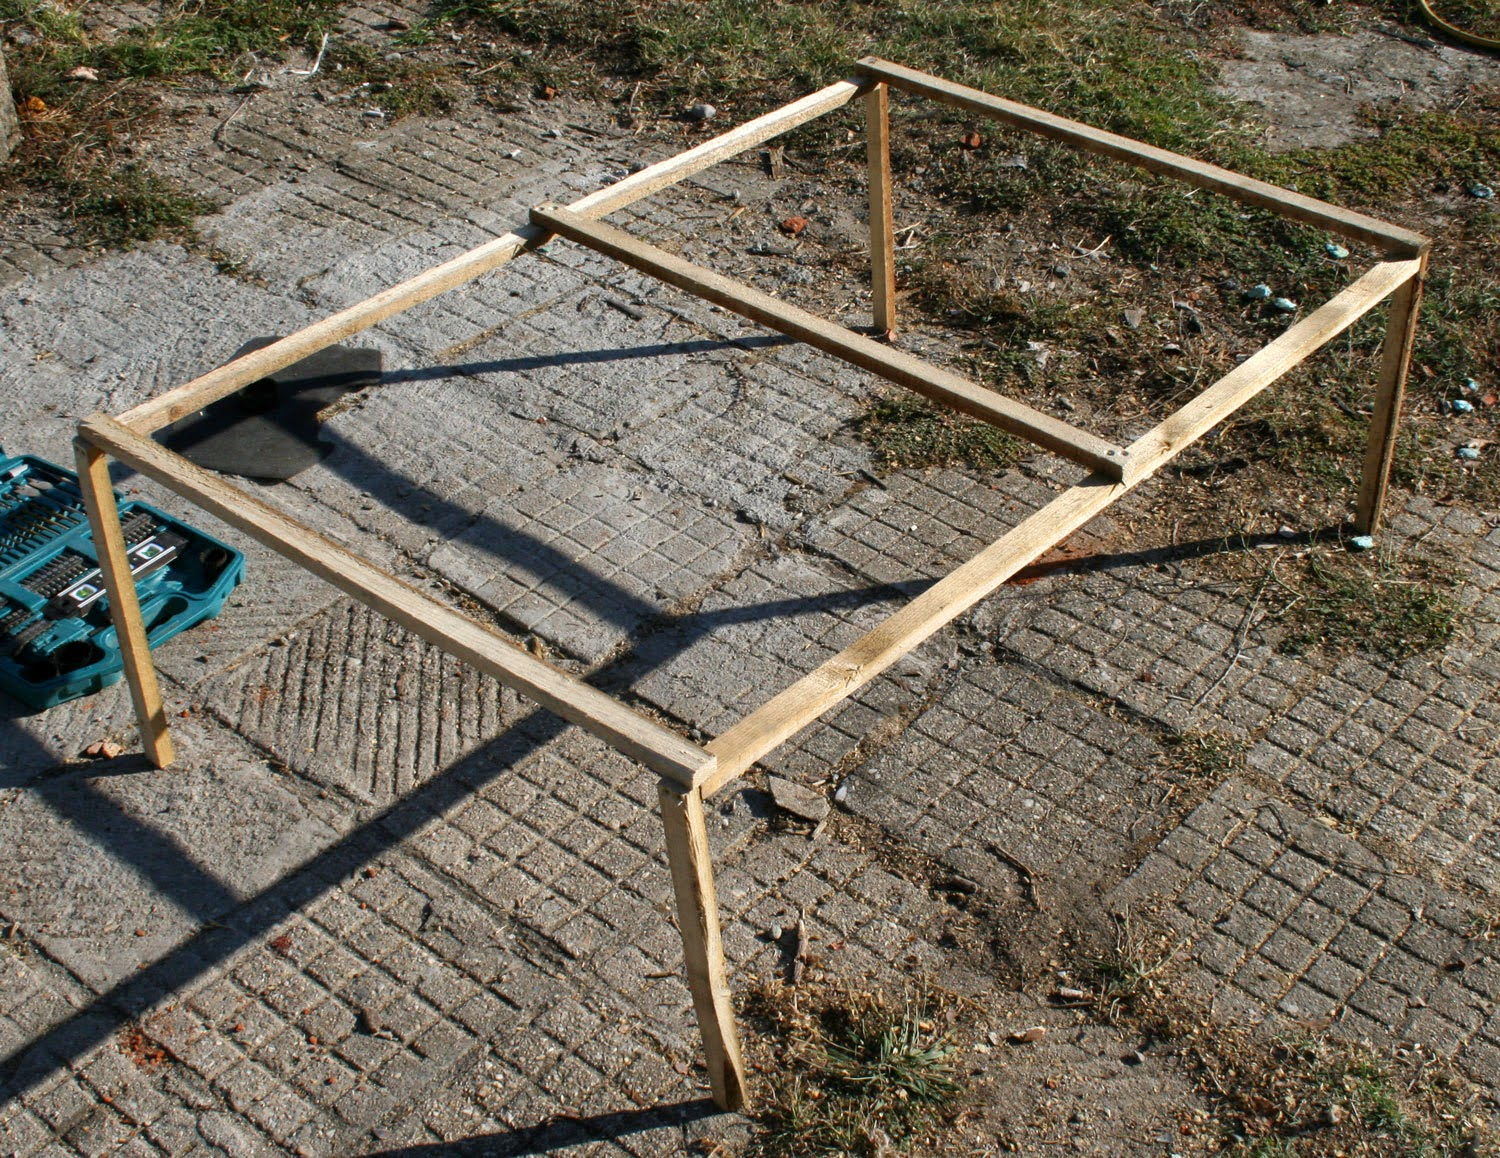 Frame for the bird netting